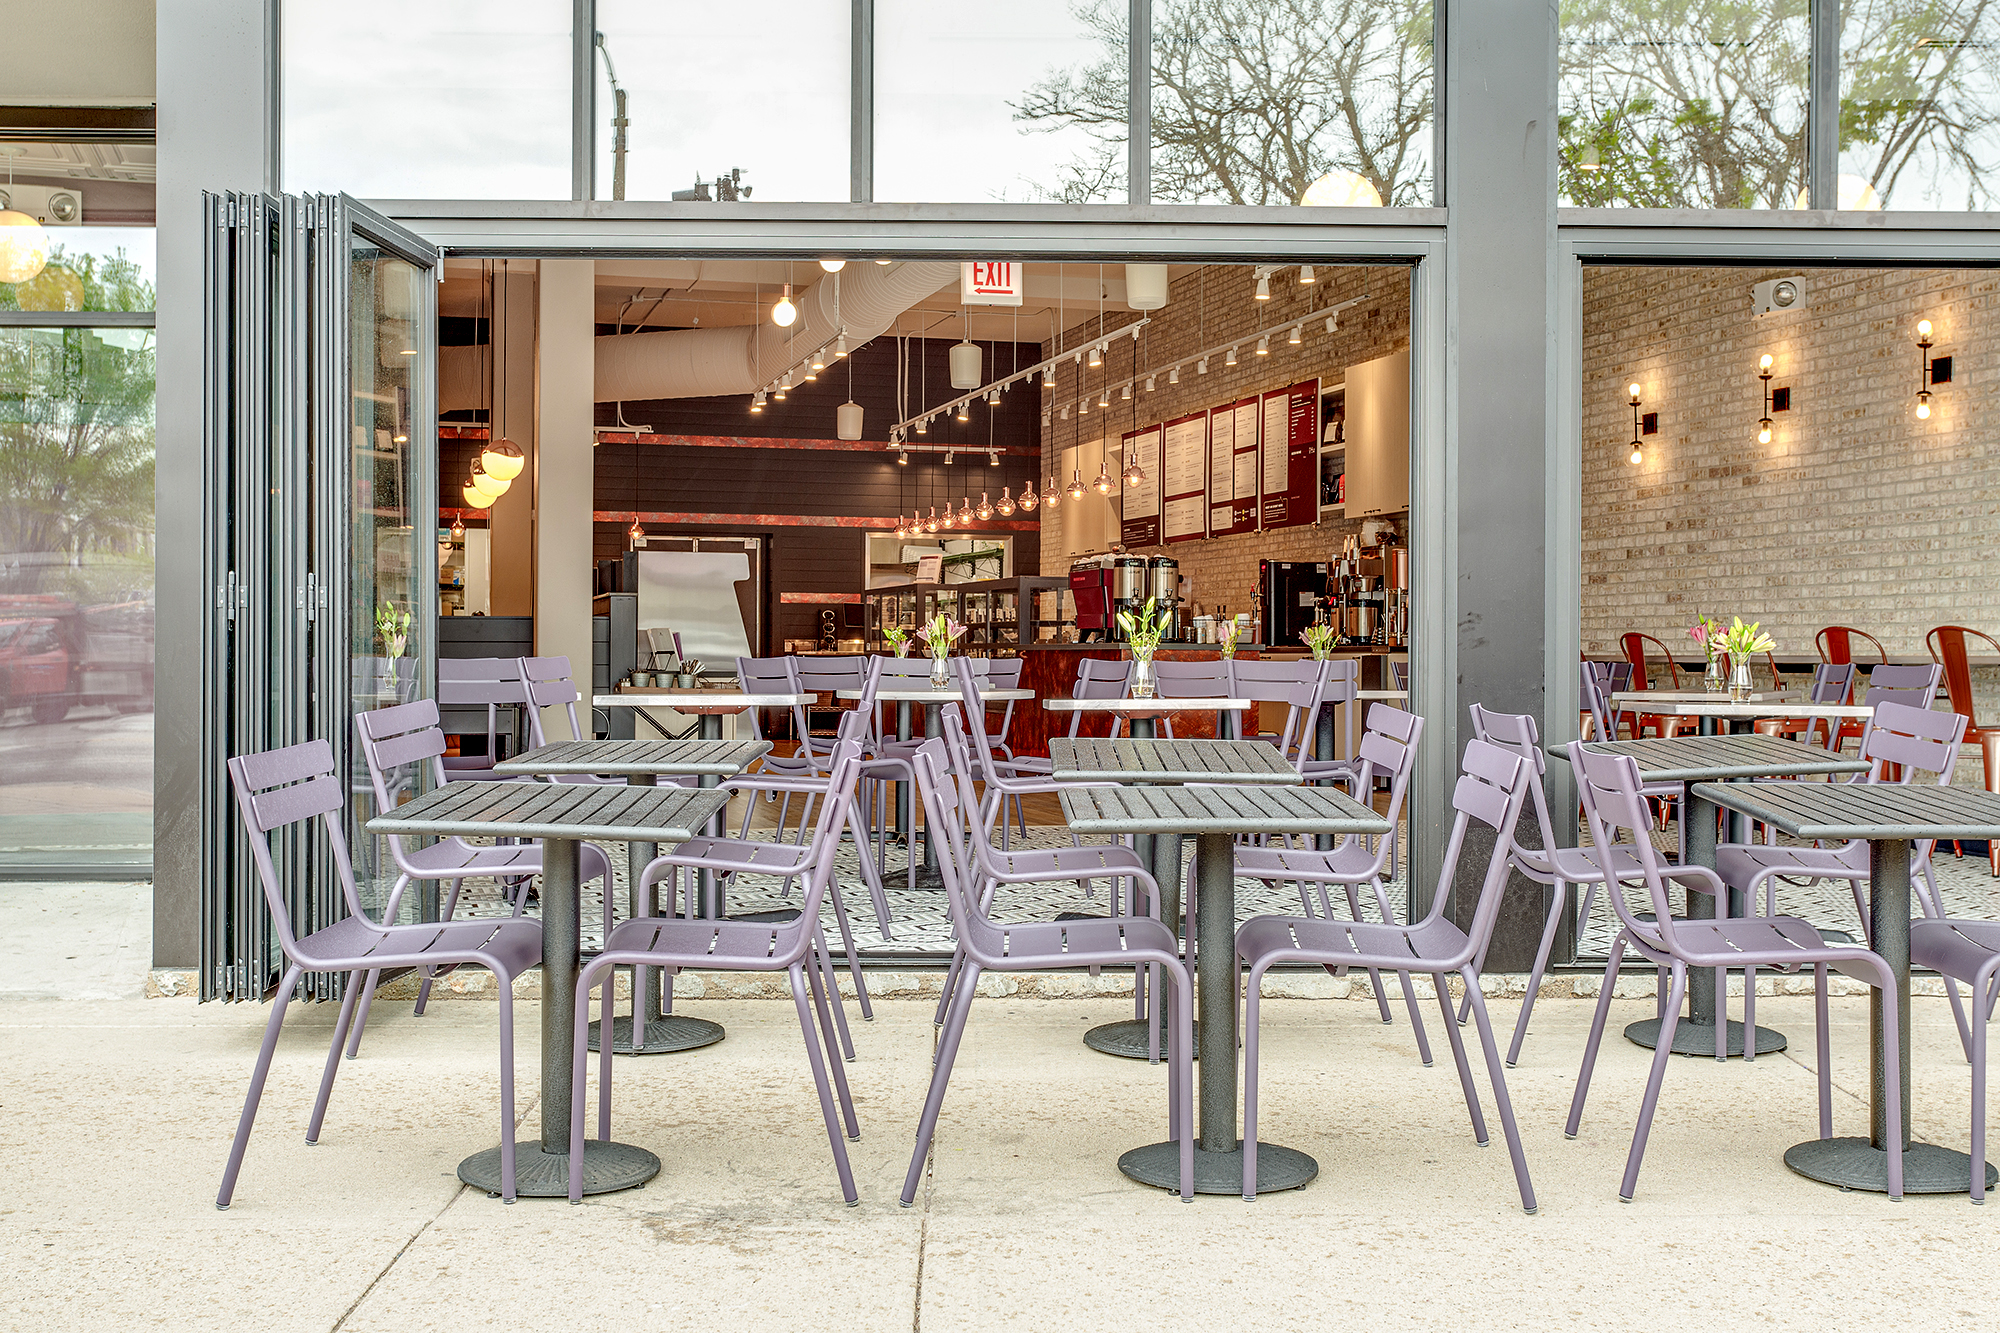 Blackberry Market Exterior Seating